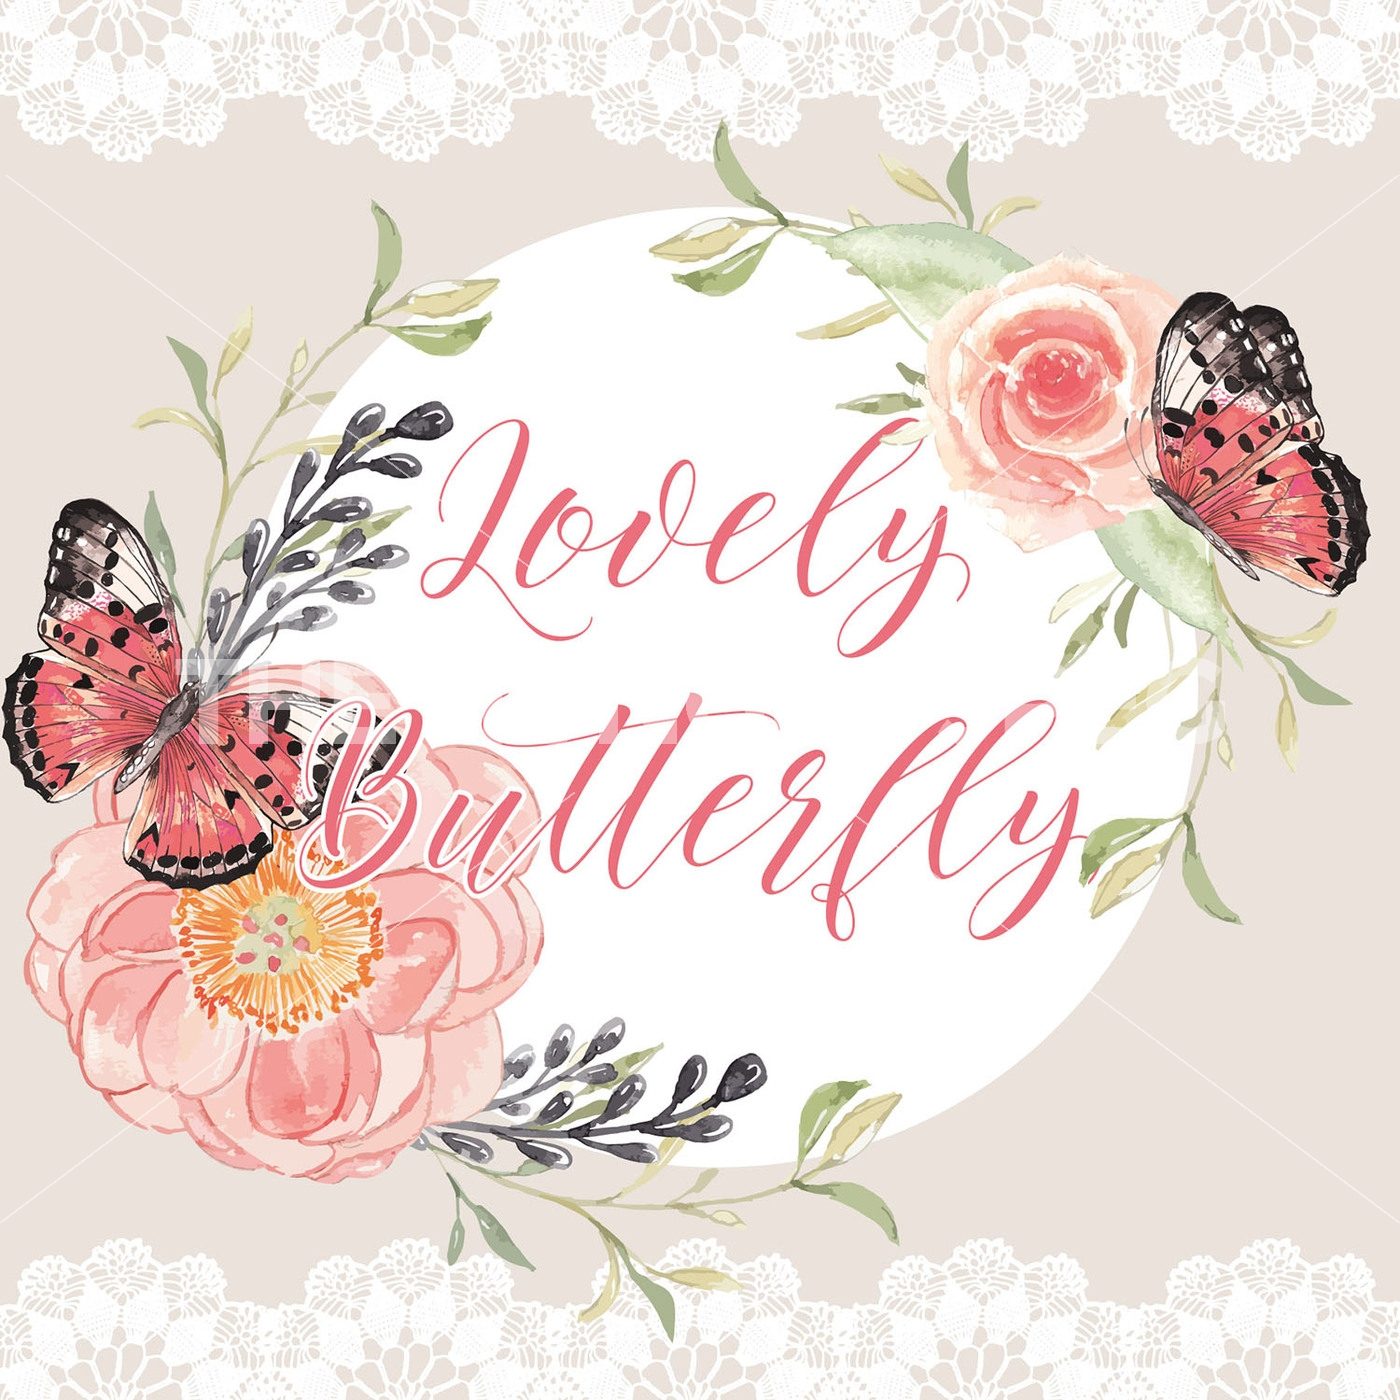 Peony clipart wedding invitation #11